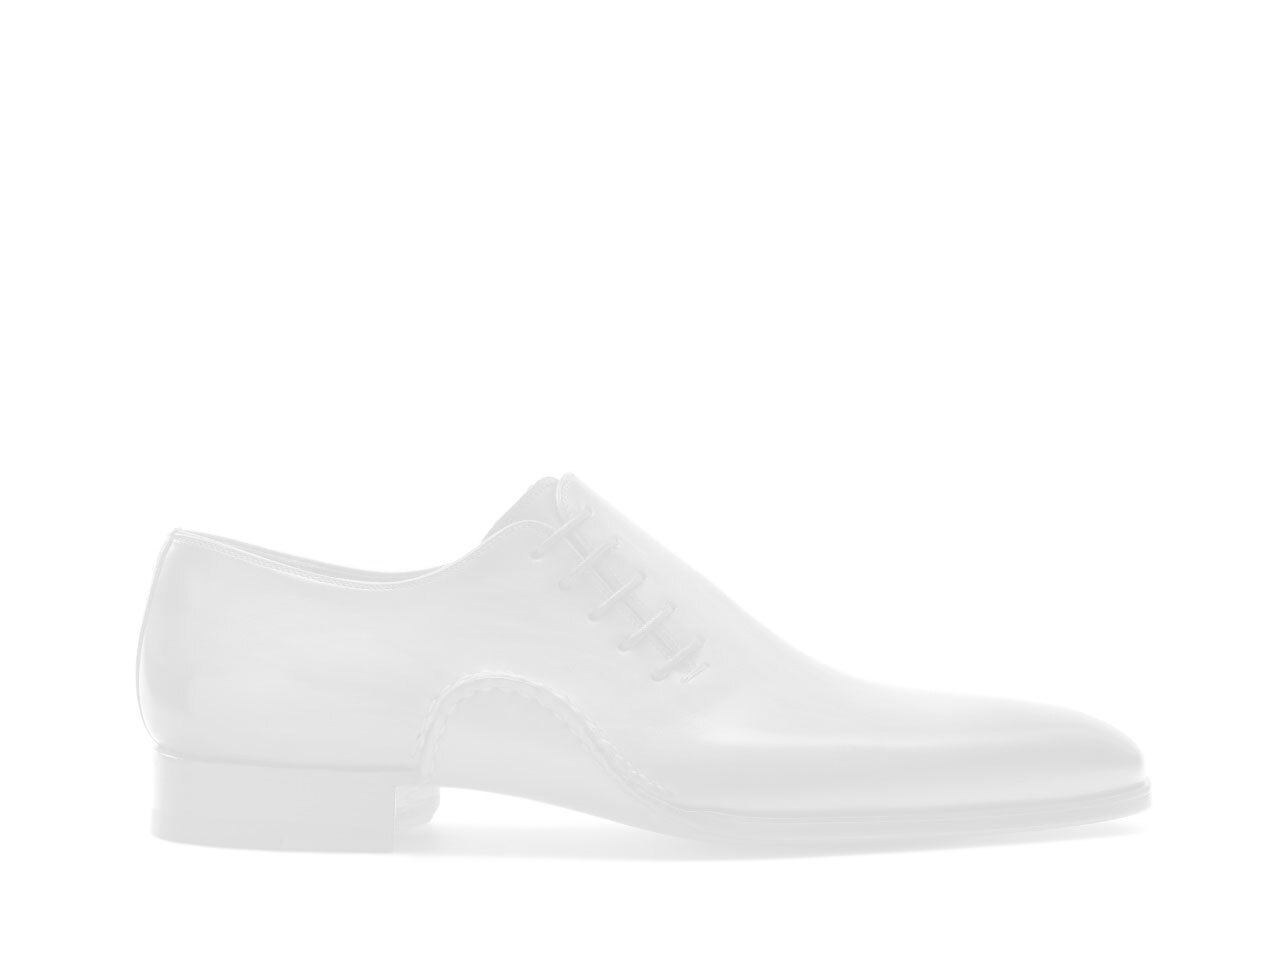 Sole of the Magnanni Basilio Lo White Men's Sneakers